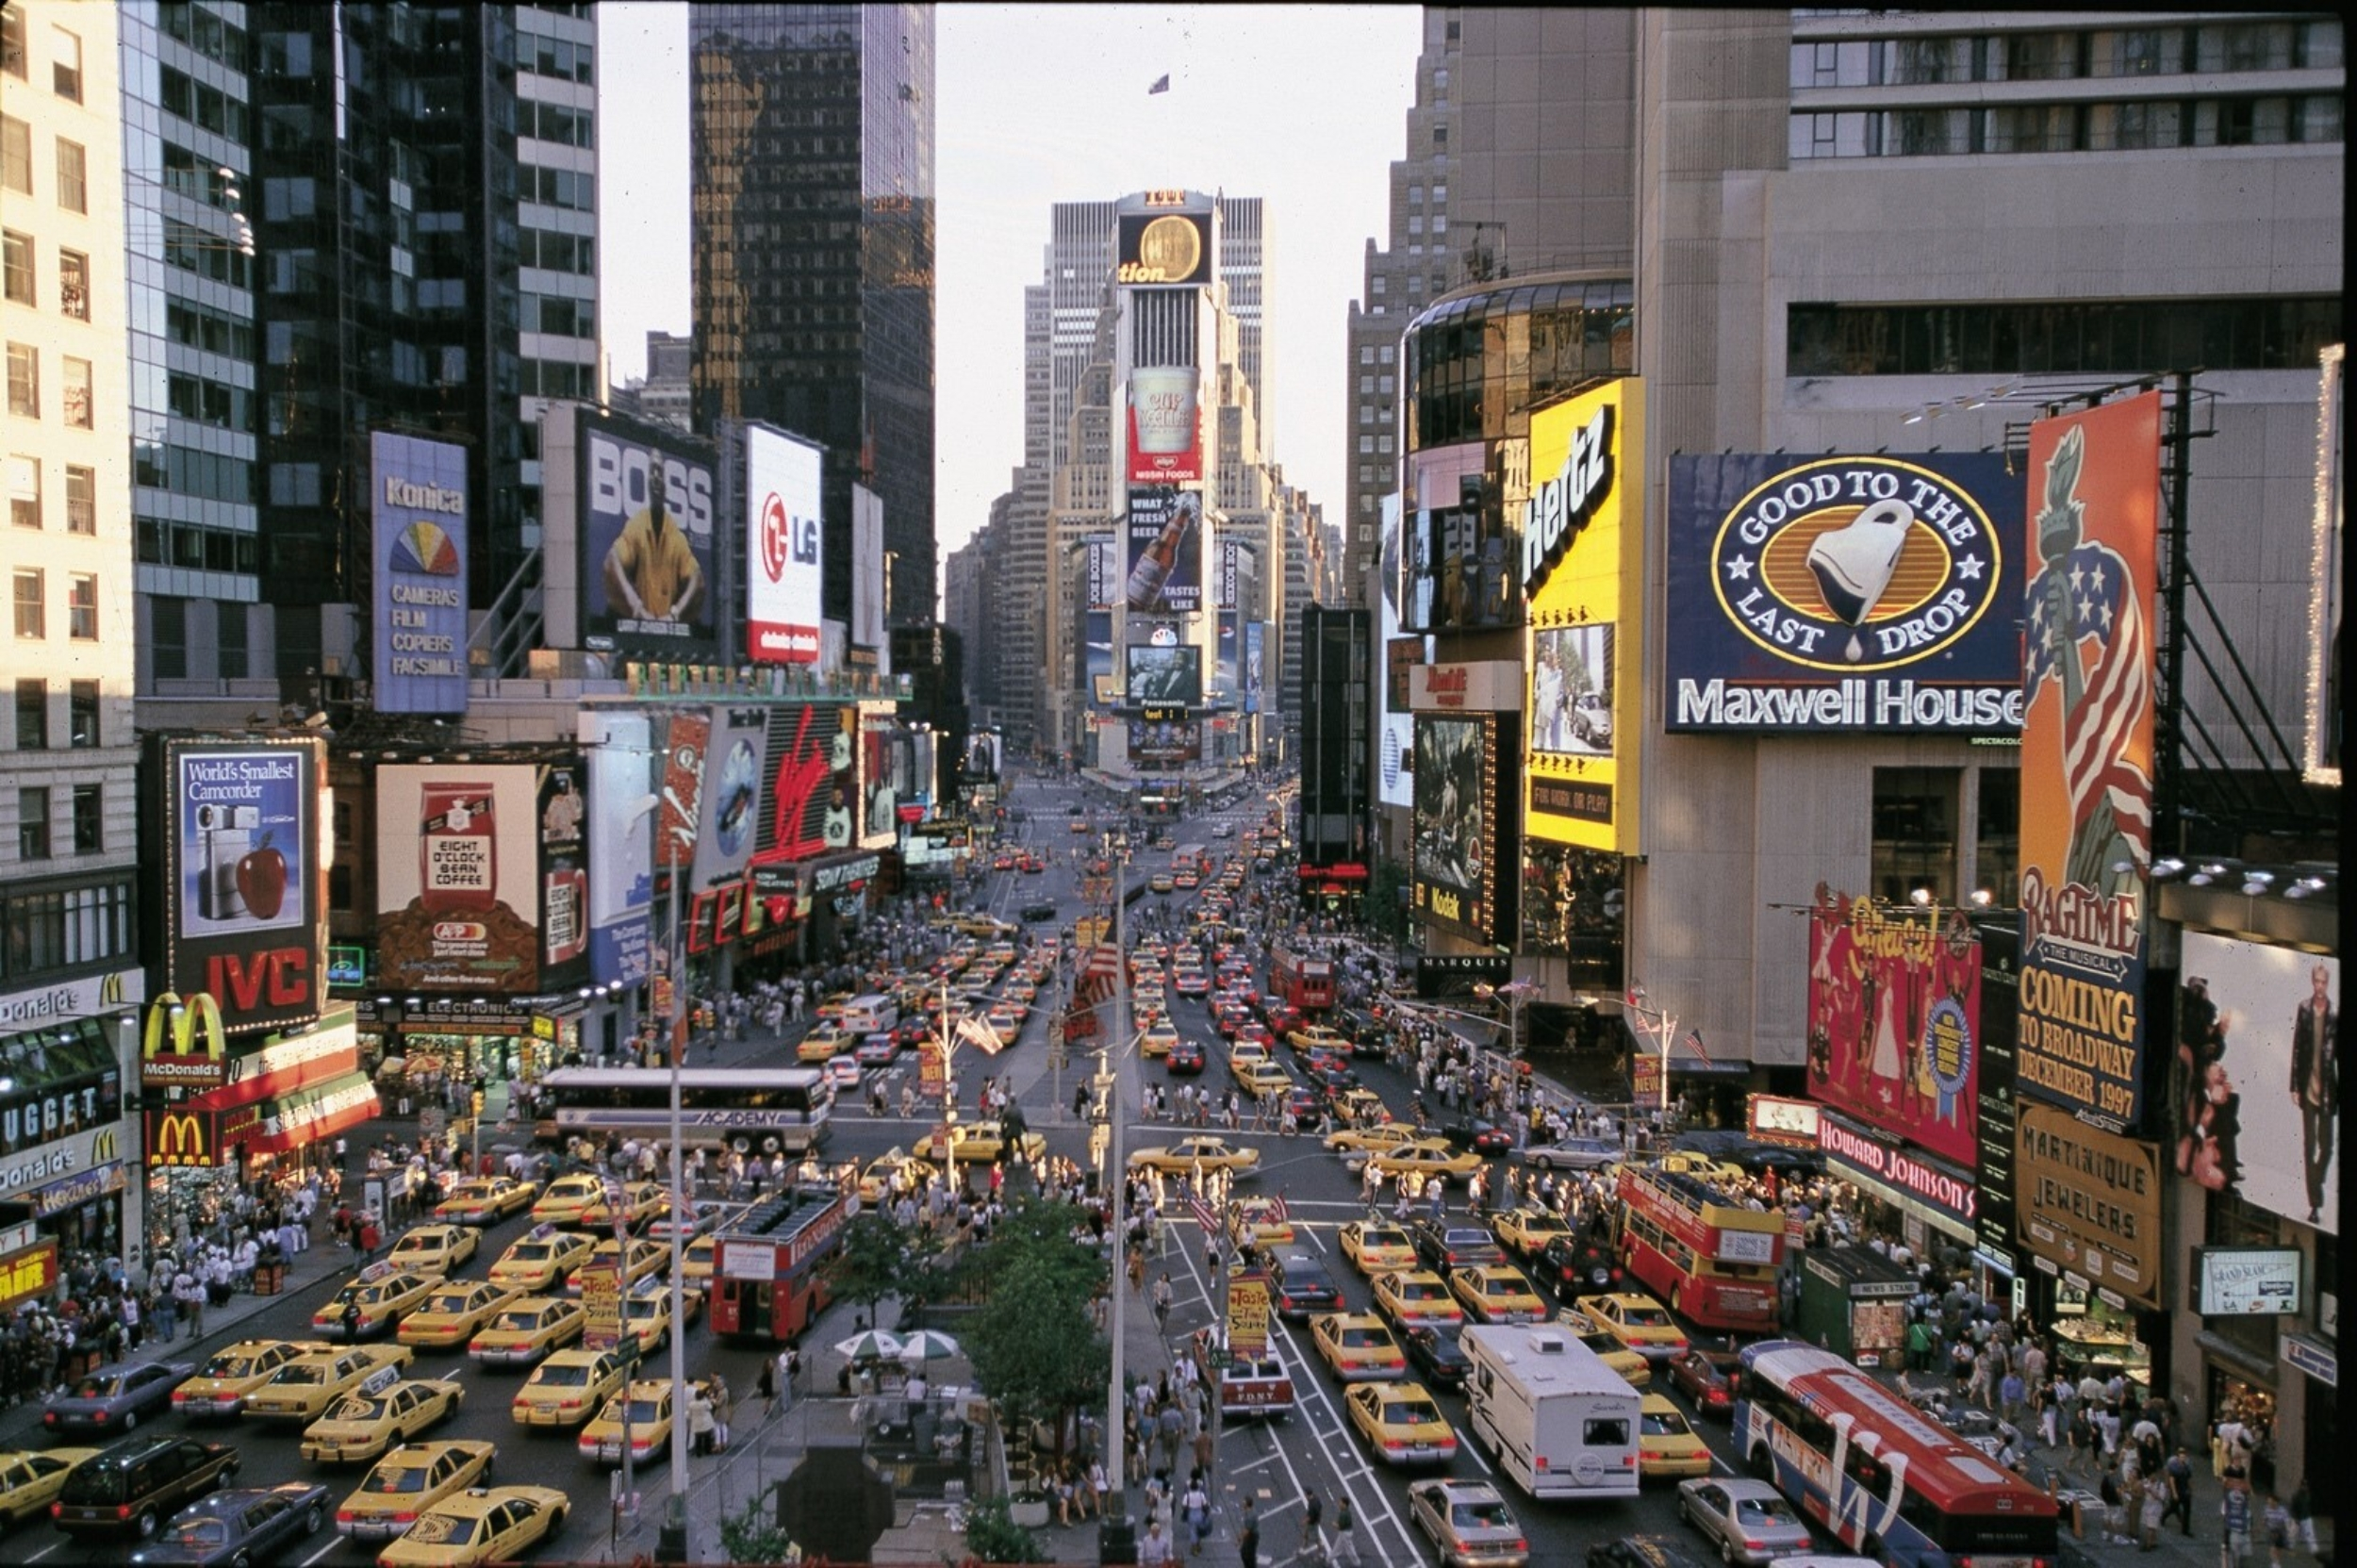 A late 1990s image of Times Square in New York City with One Times Square in the middle